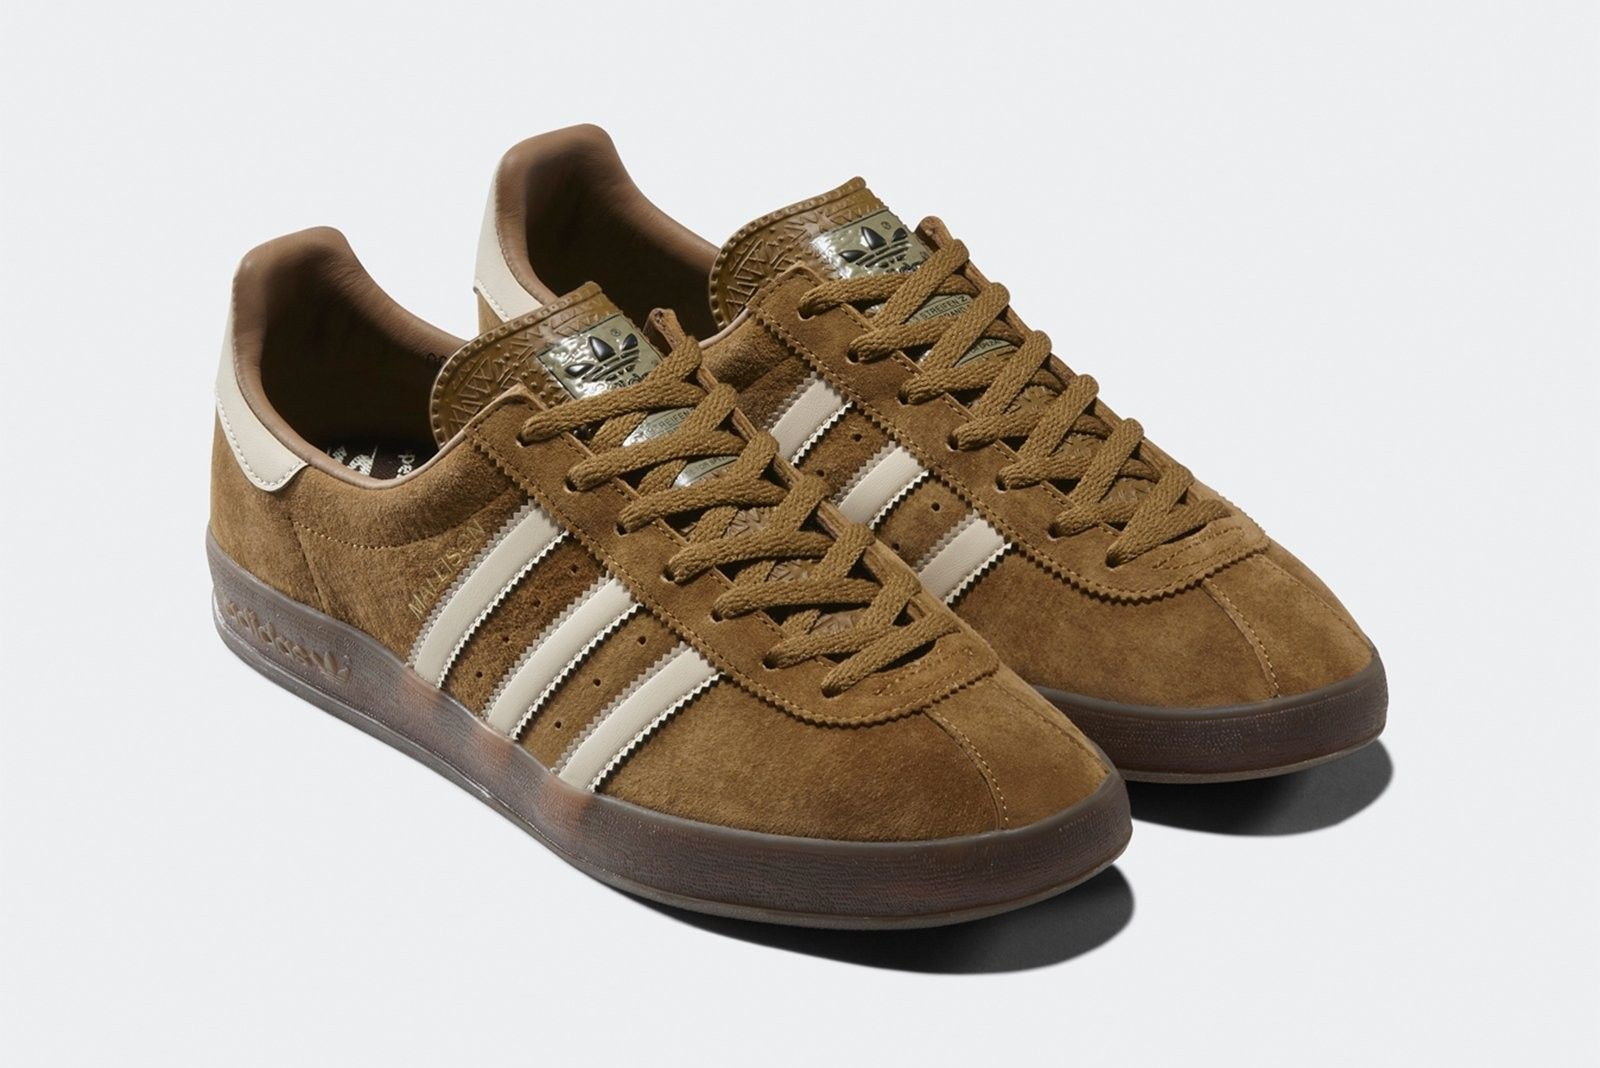 huge sale 8693e c8b13 Adidas Mallison Spezial launches 21st September - Adidas Spezial AW18 range